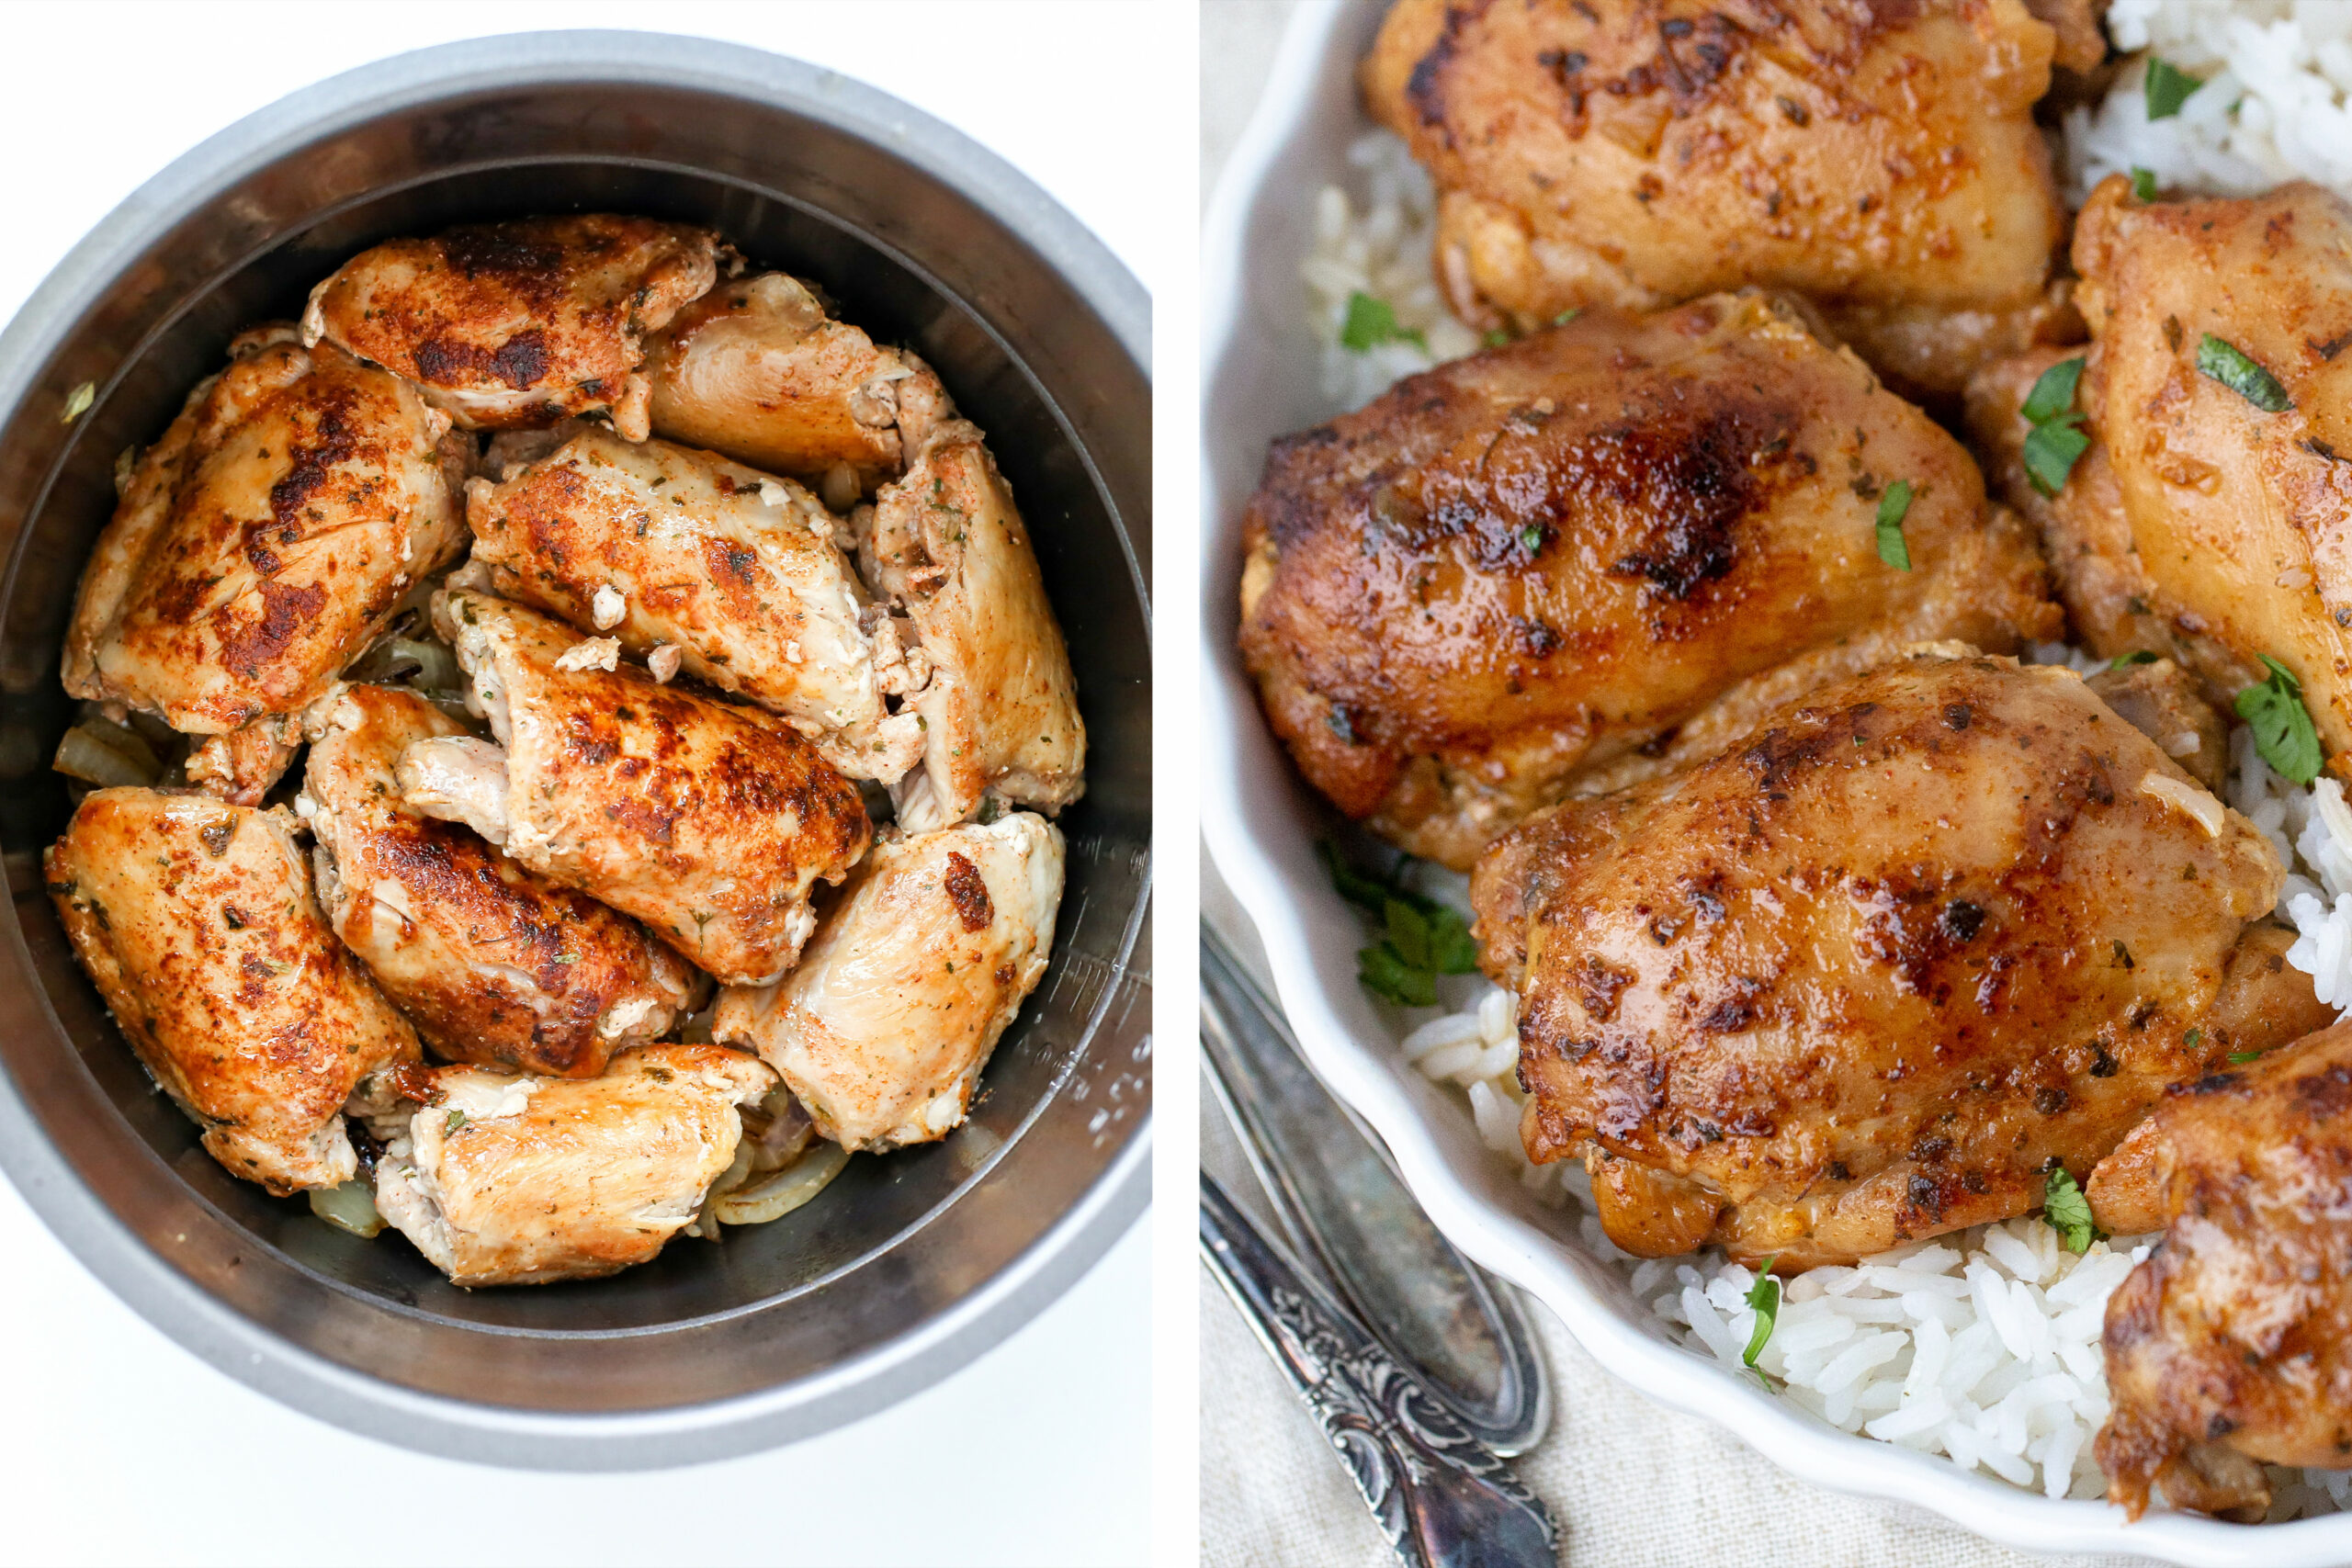 Instant Pot Chicken Thighs (Fresh Or Frozen) - Momsdish - Pressure Cooker Xl Chicken Thigh Recipes